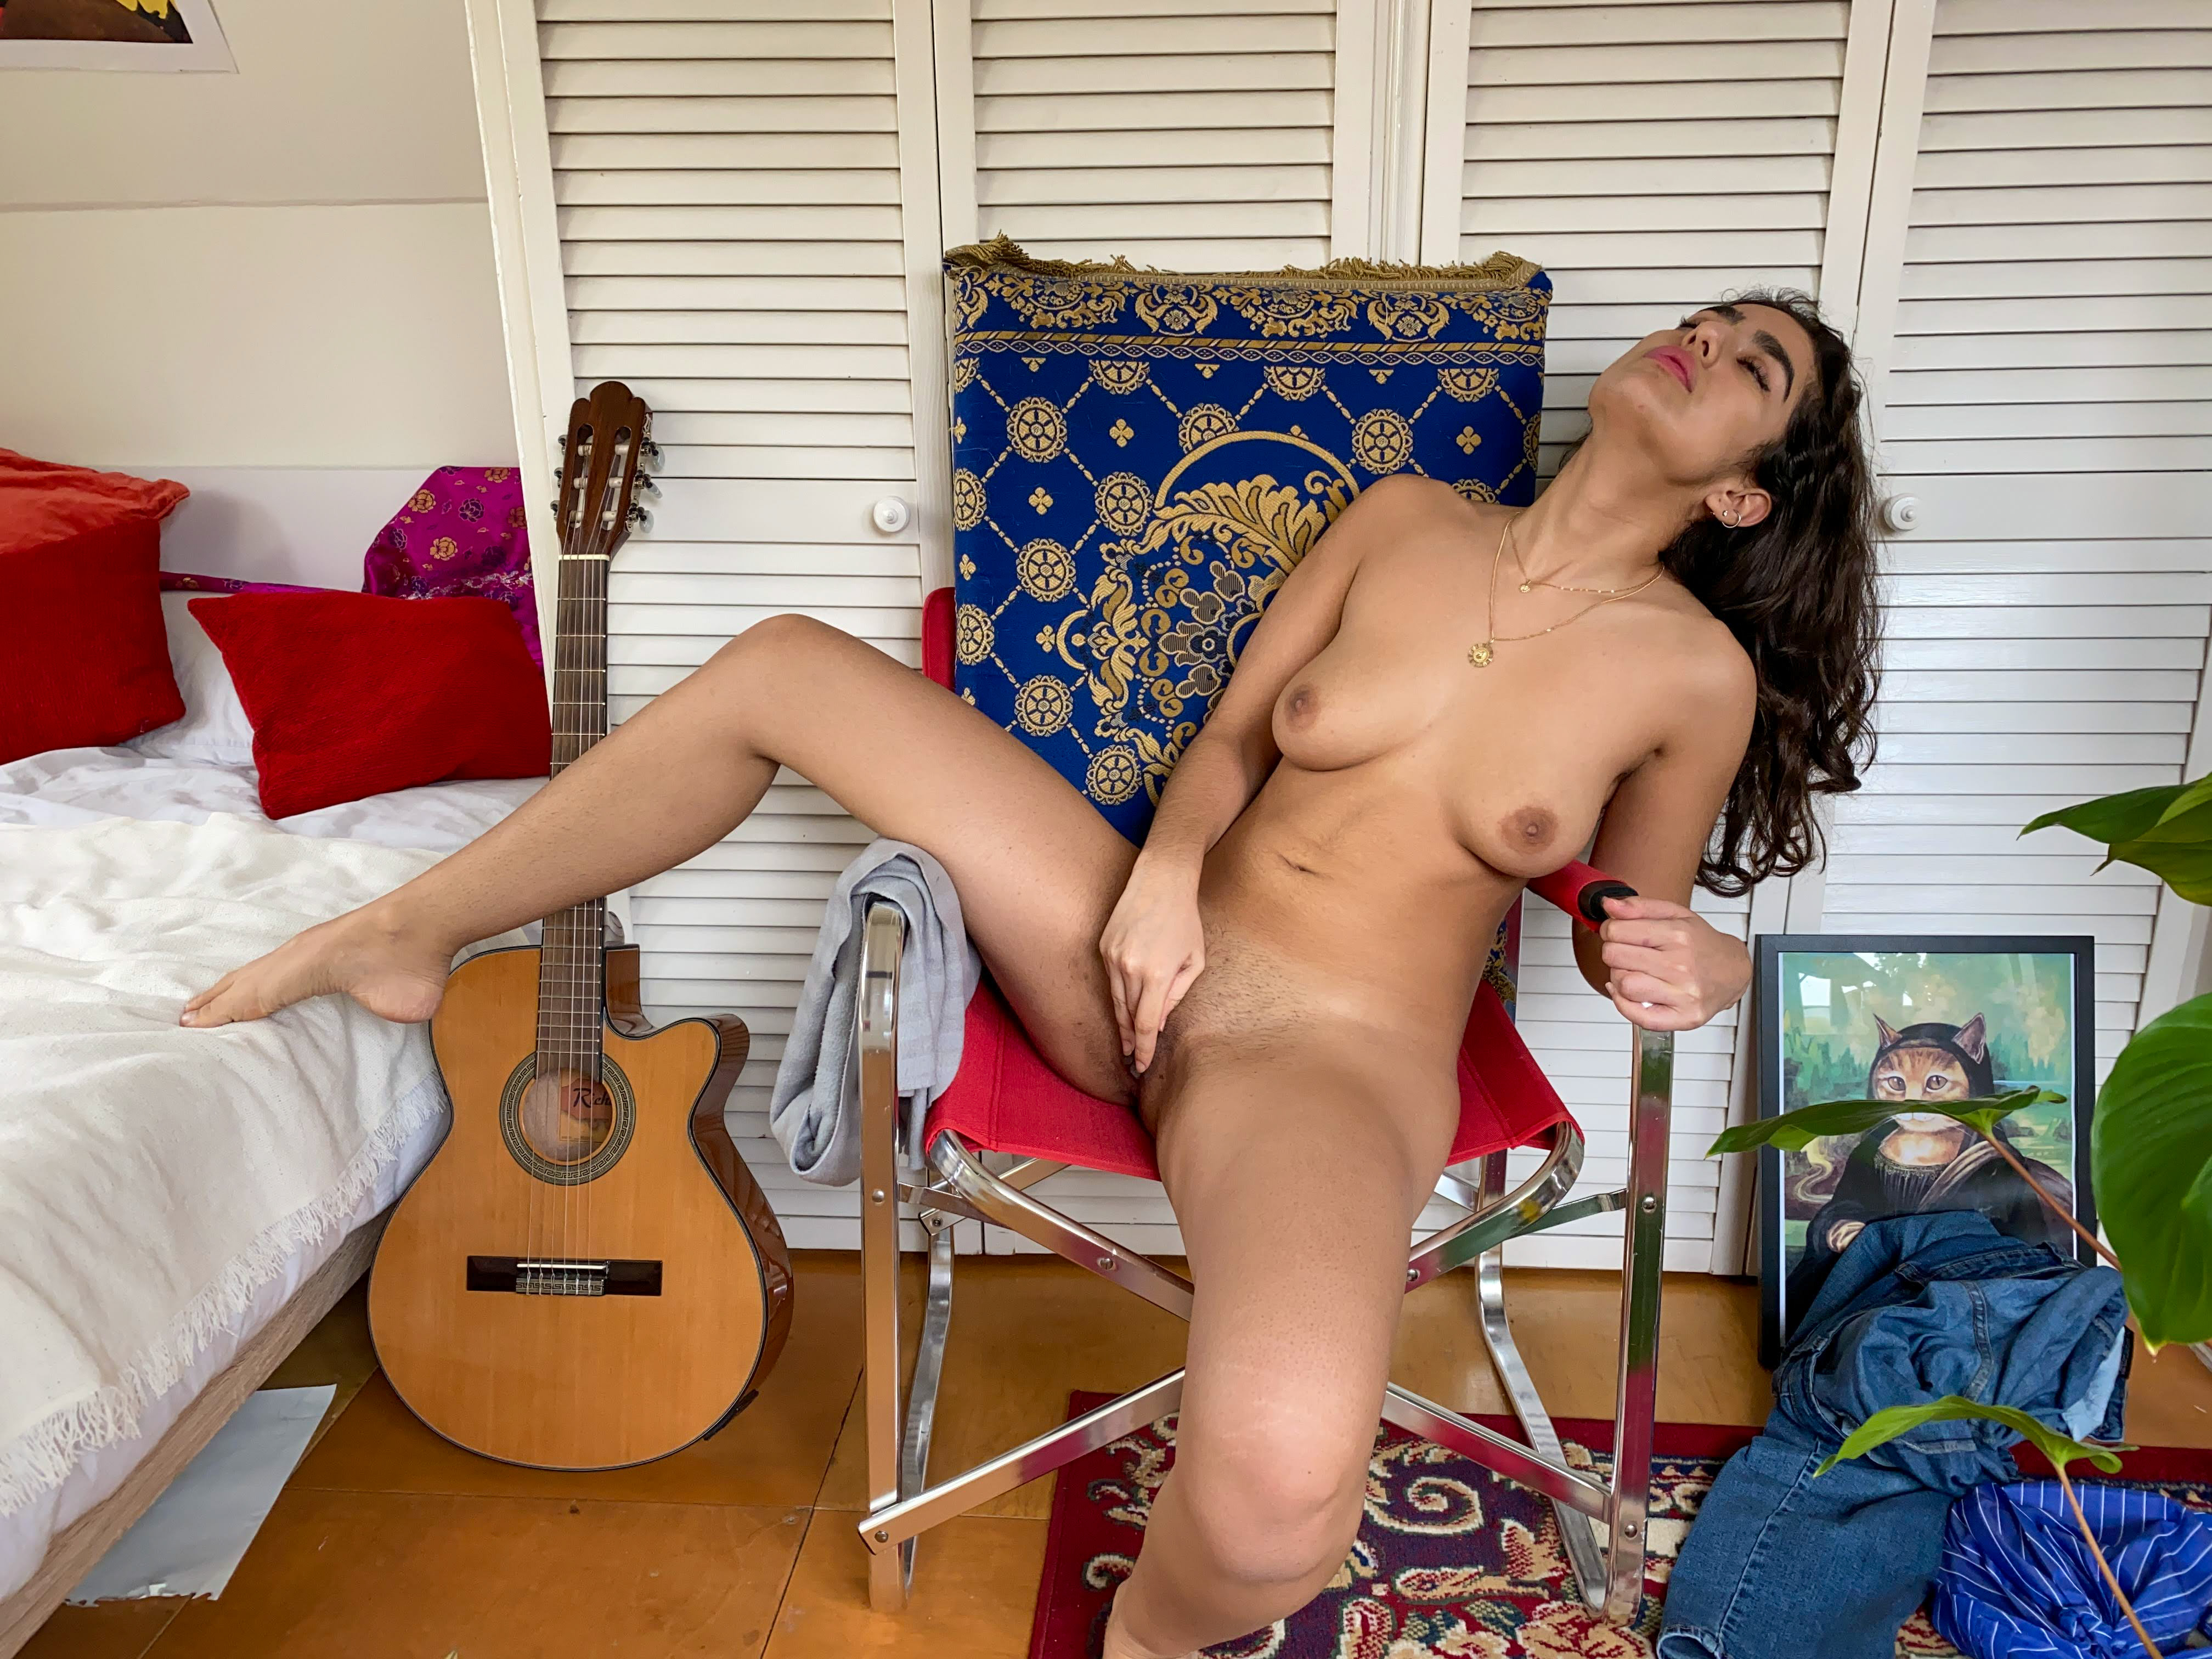 Ersties.com Intimate Moments Luna X. – The Embodiment Of The Colour Red (21)